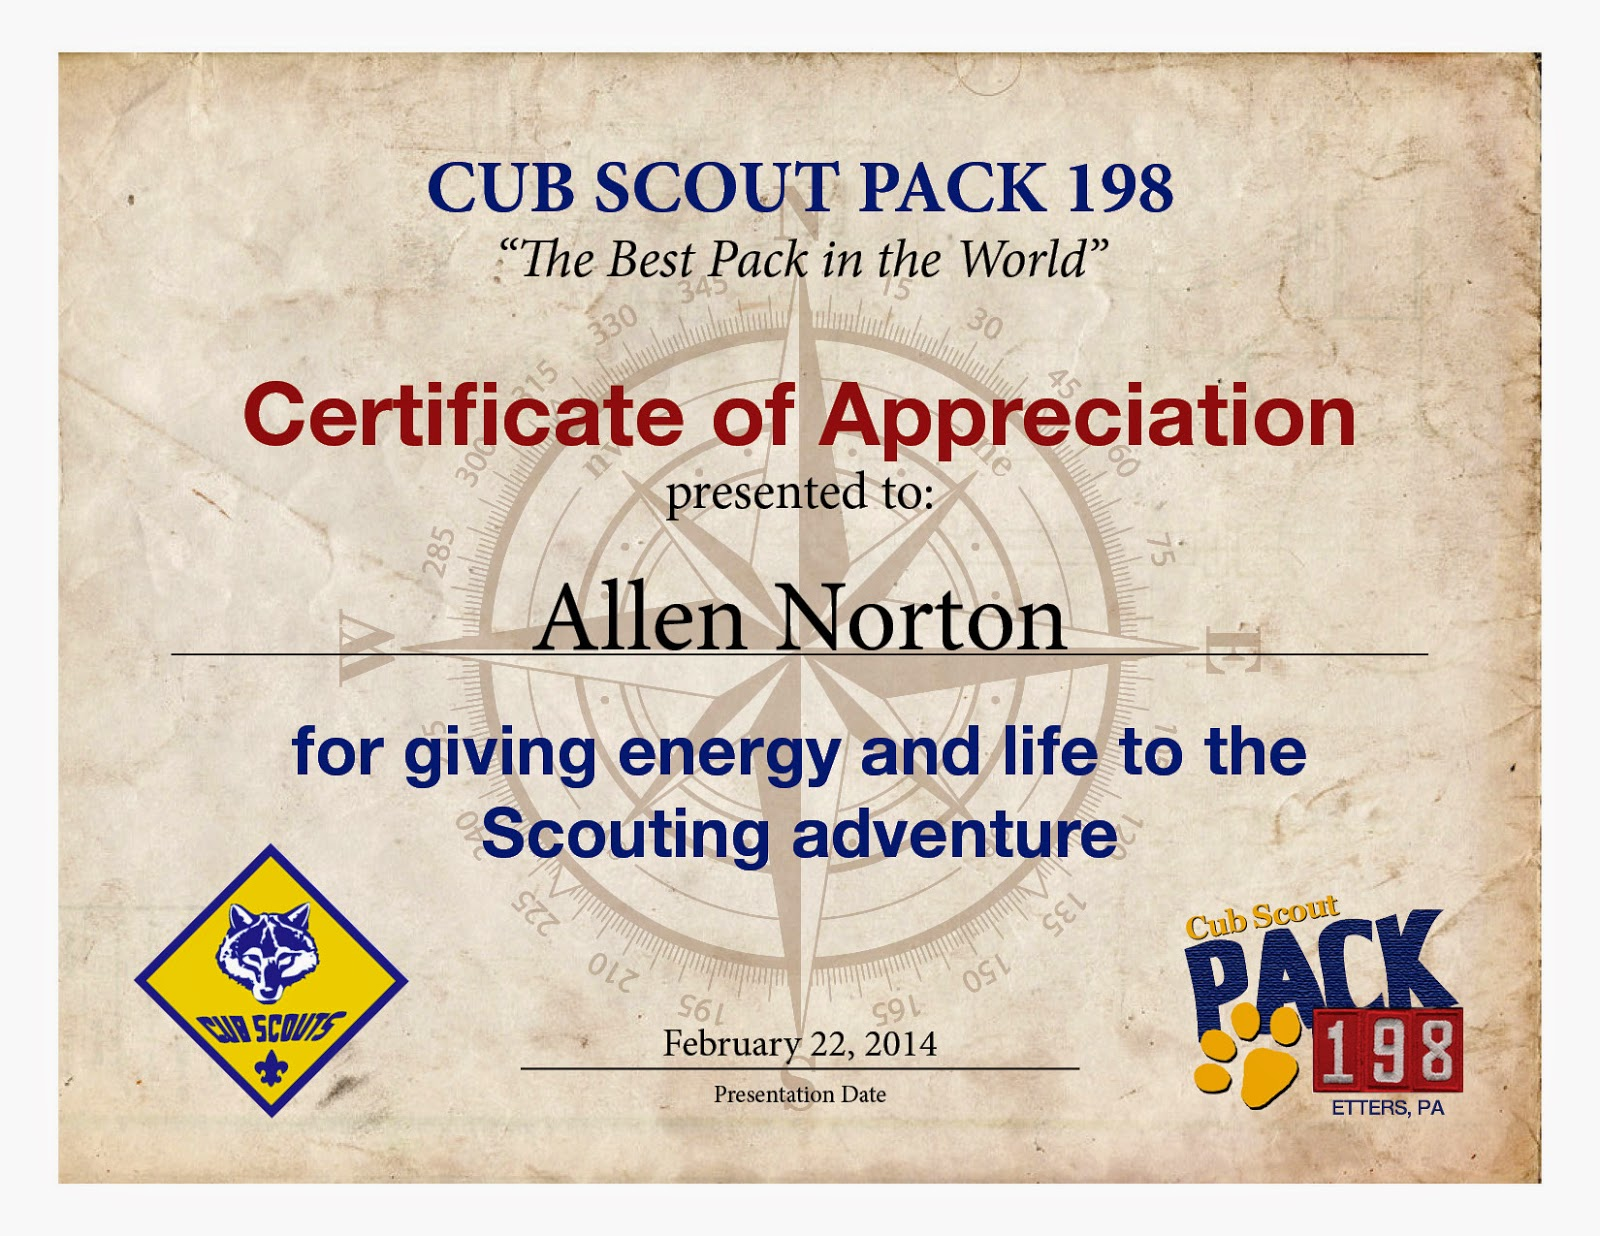 cub scout certificate templates car interior design With cub scout certificate templates